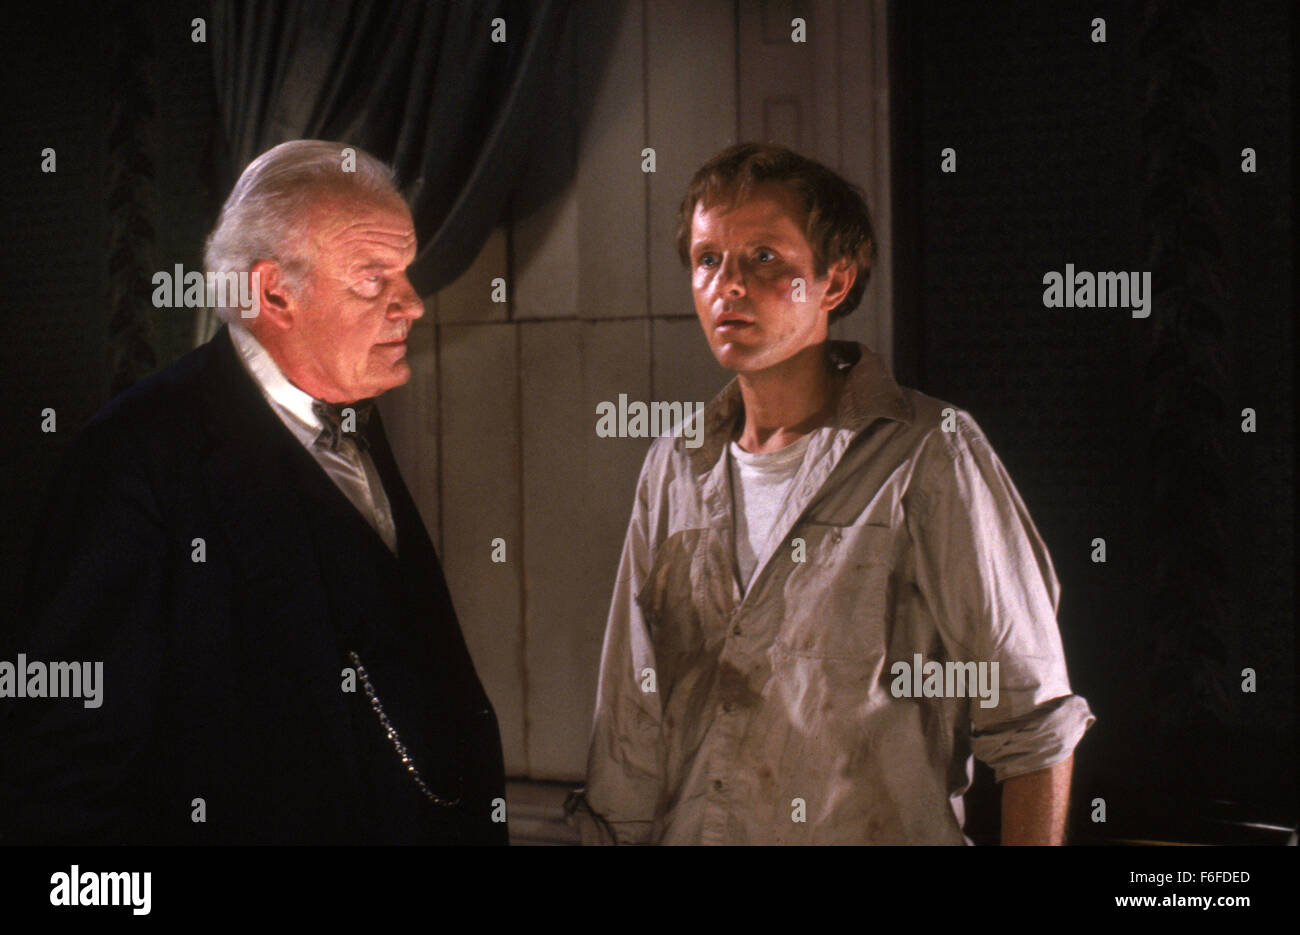 May 1987 Stock Photos & May 1987 Stock Images - Alamy